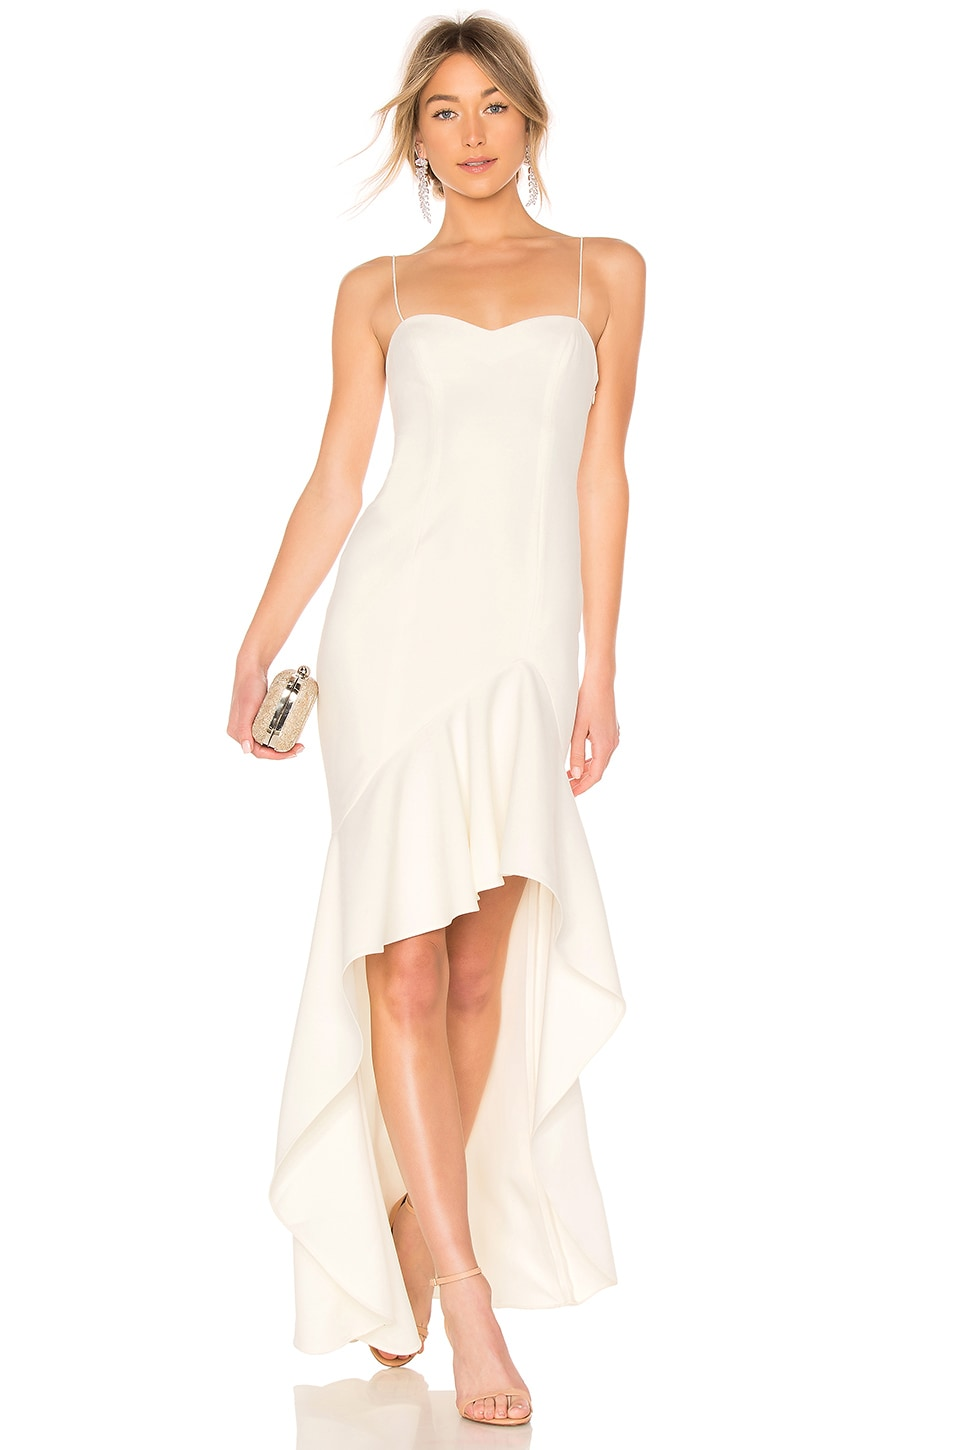 LIKELY Vita Gown in White